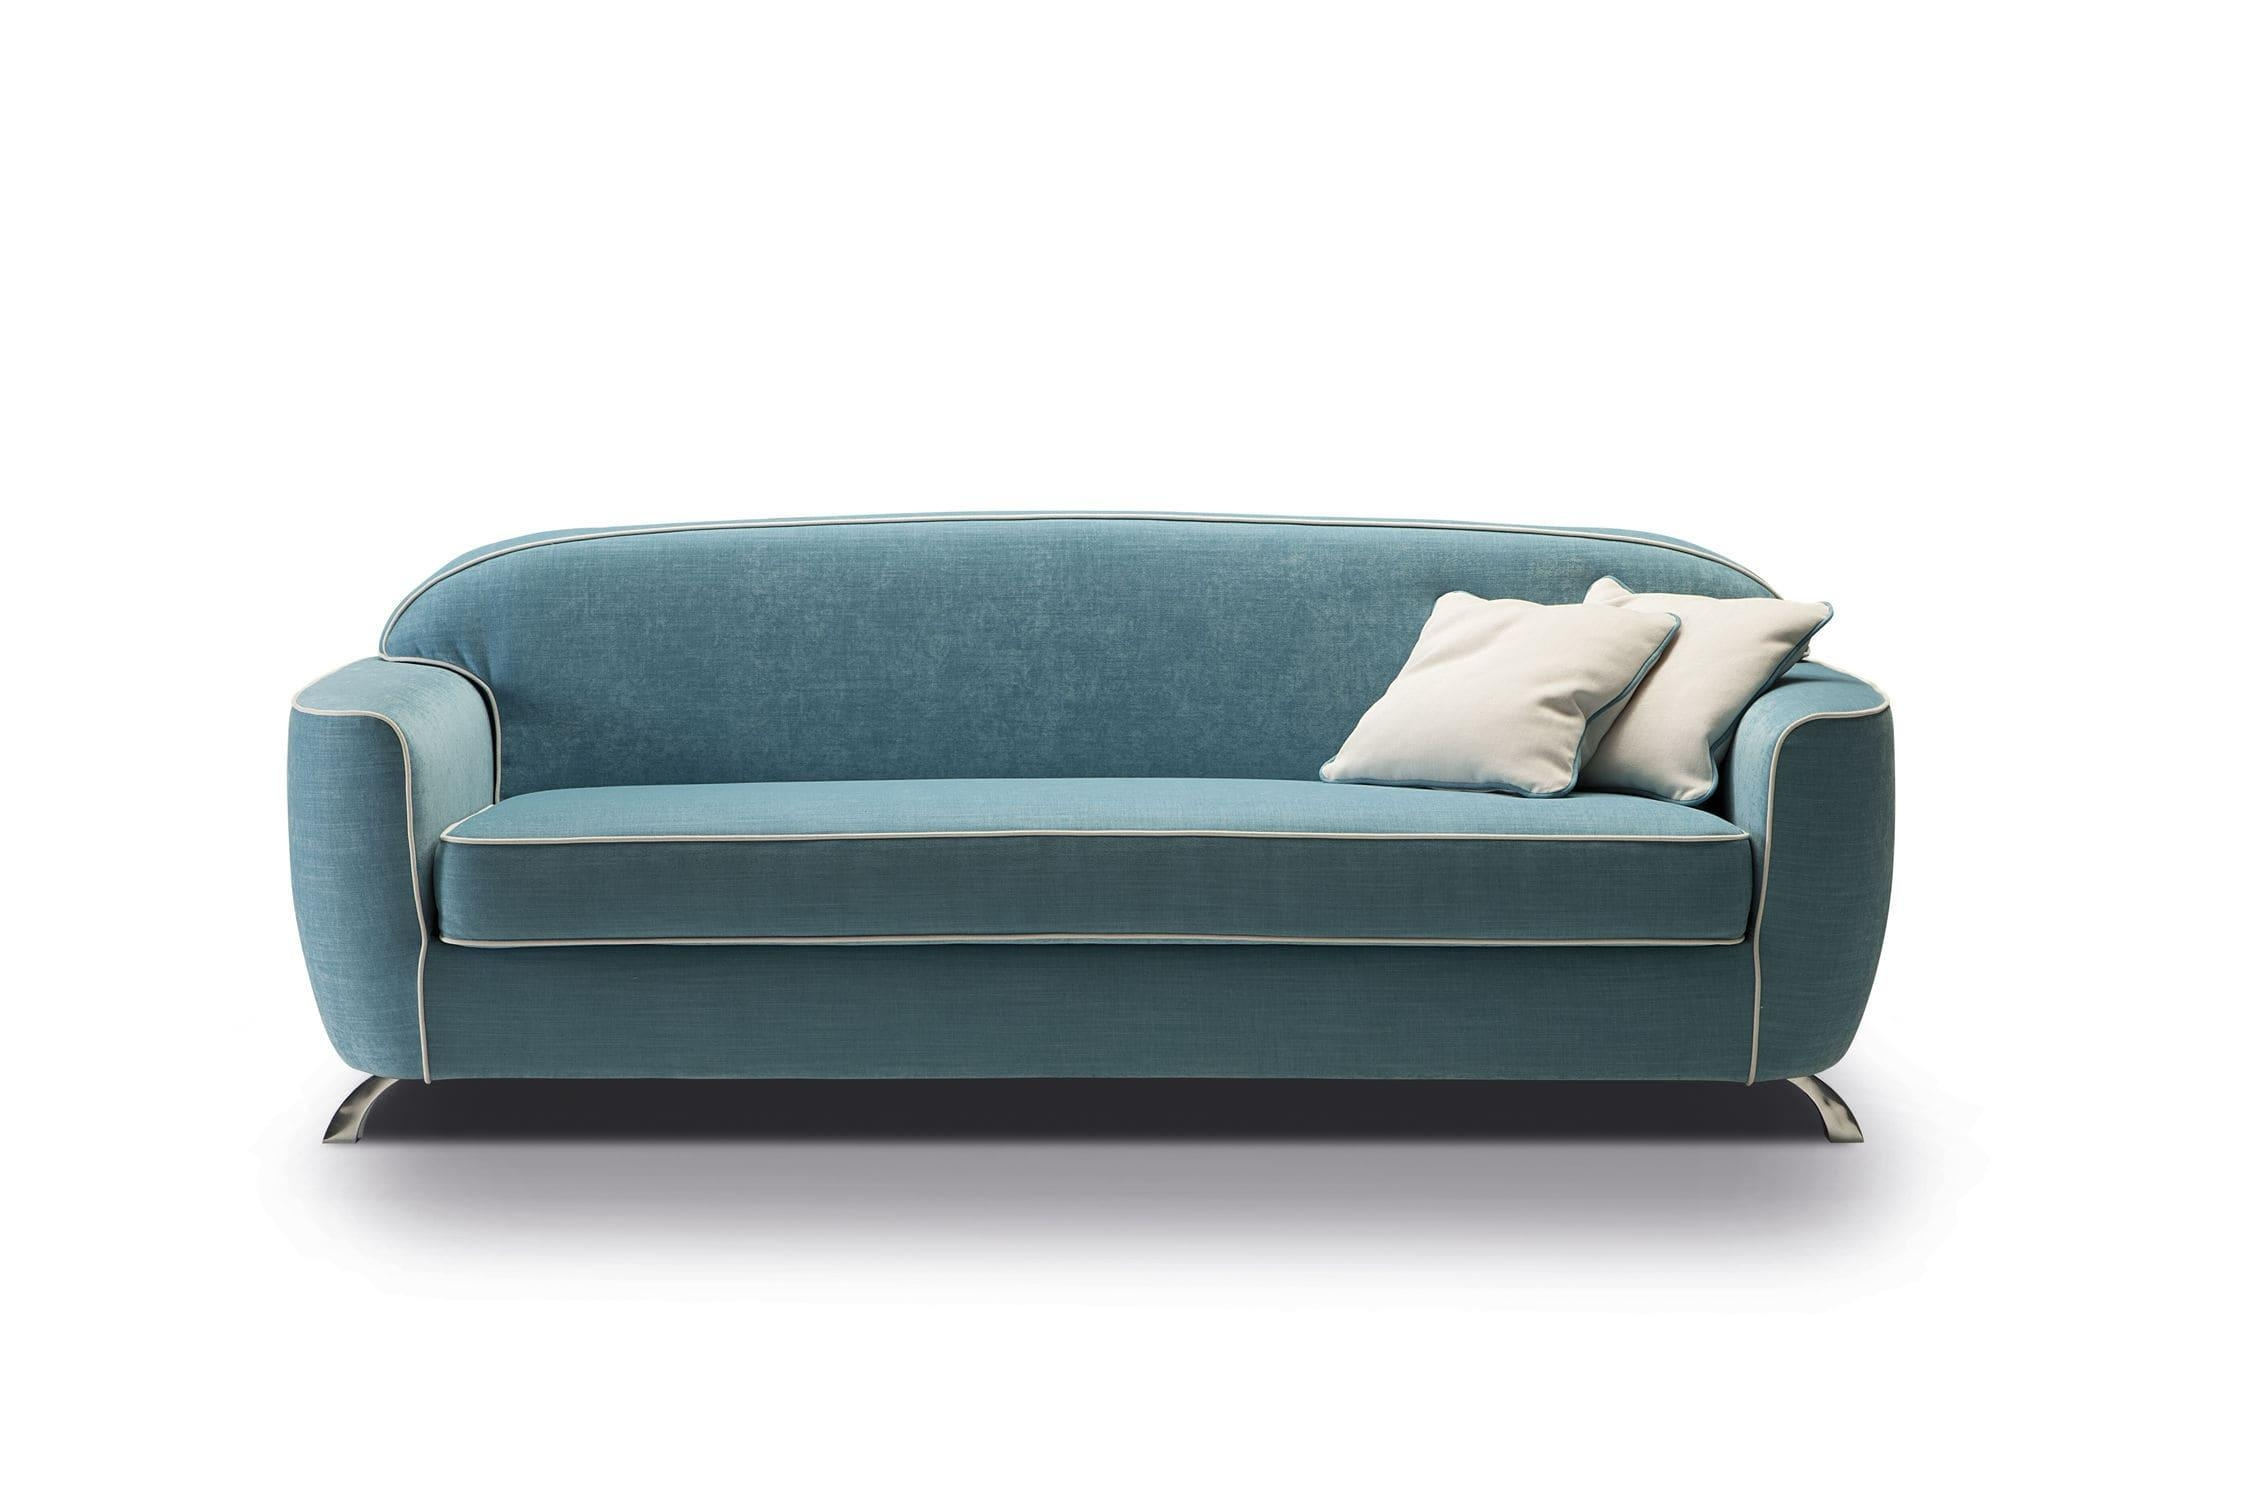 Sofa Bed / Contemporary / Fabric / With Washable Removable Cover Pertaining To Sofa With Washable Covers (Image 11 of 20)